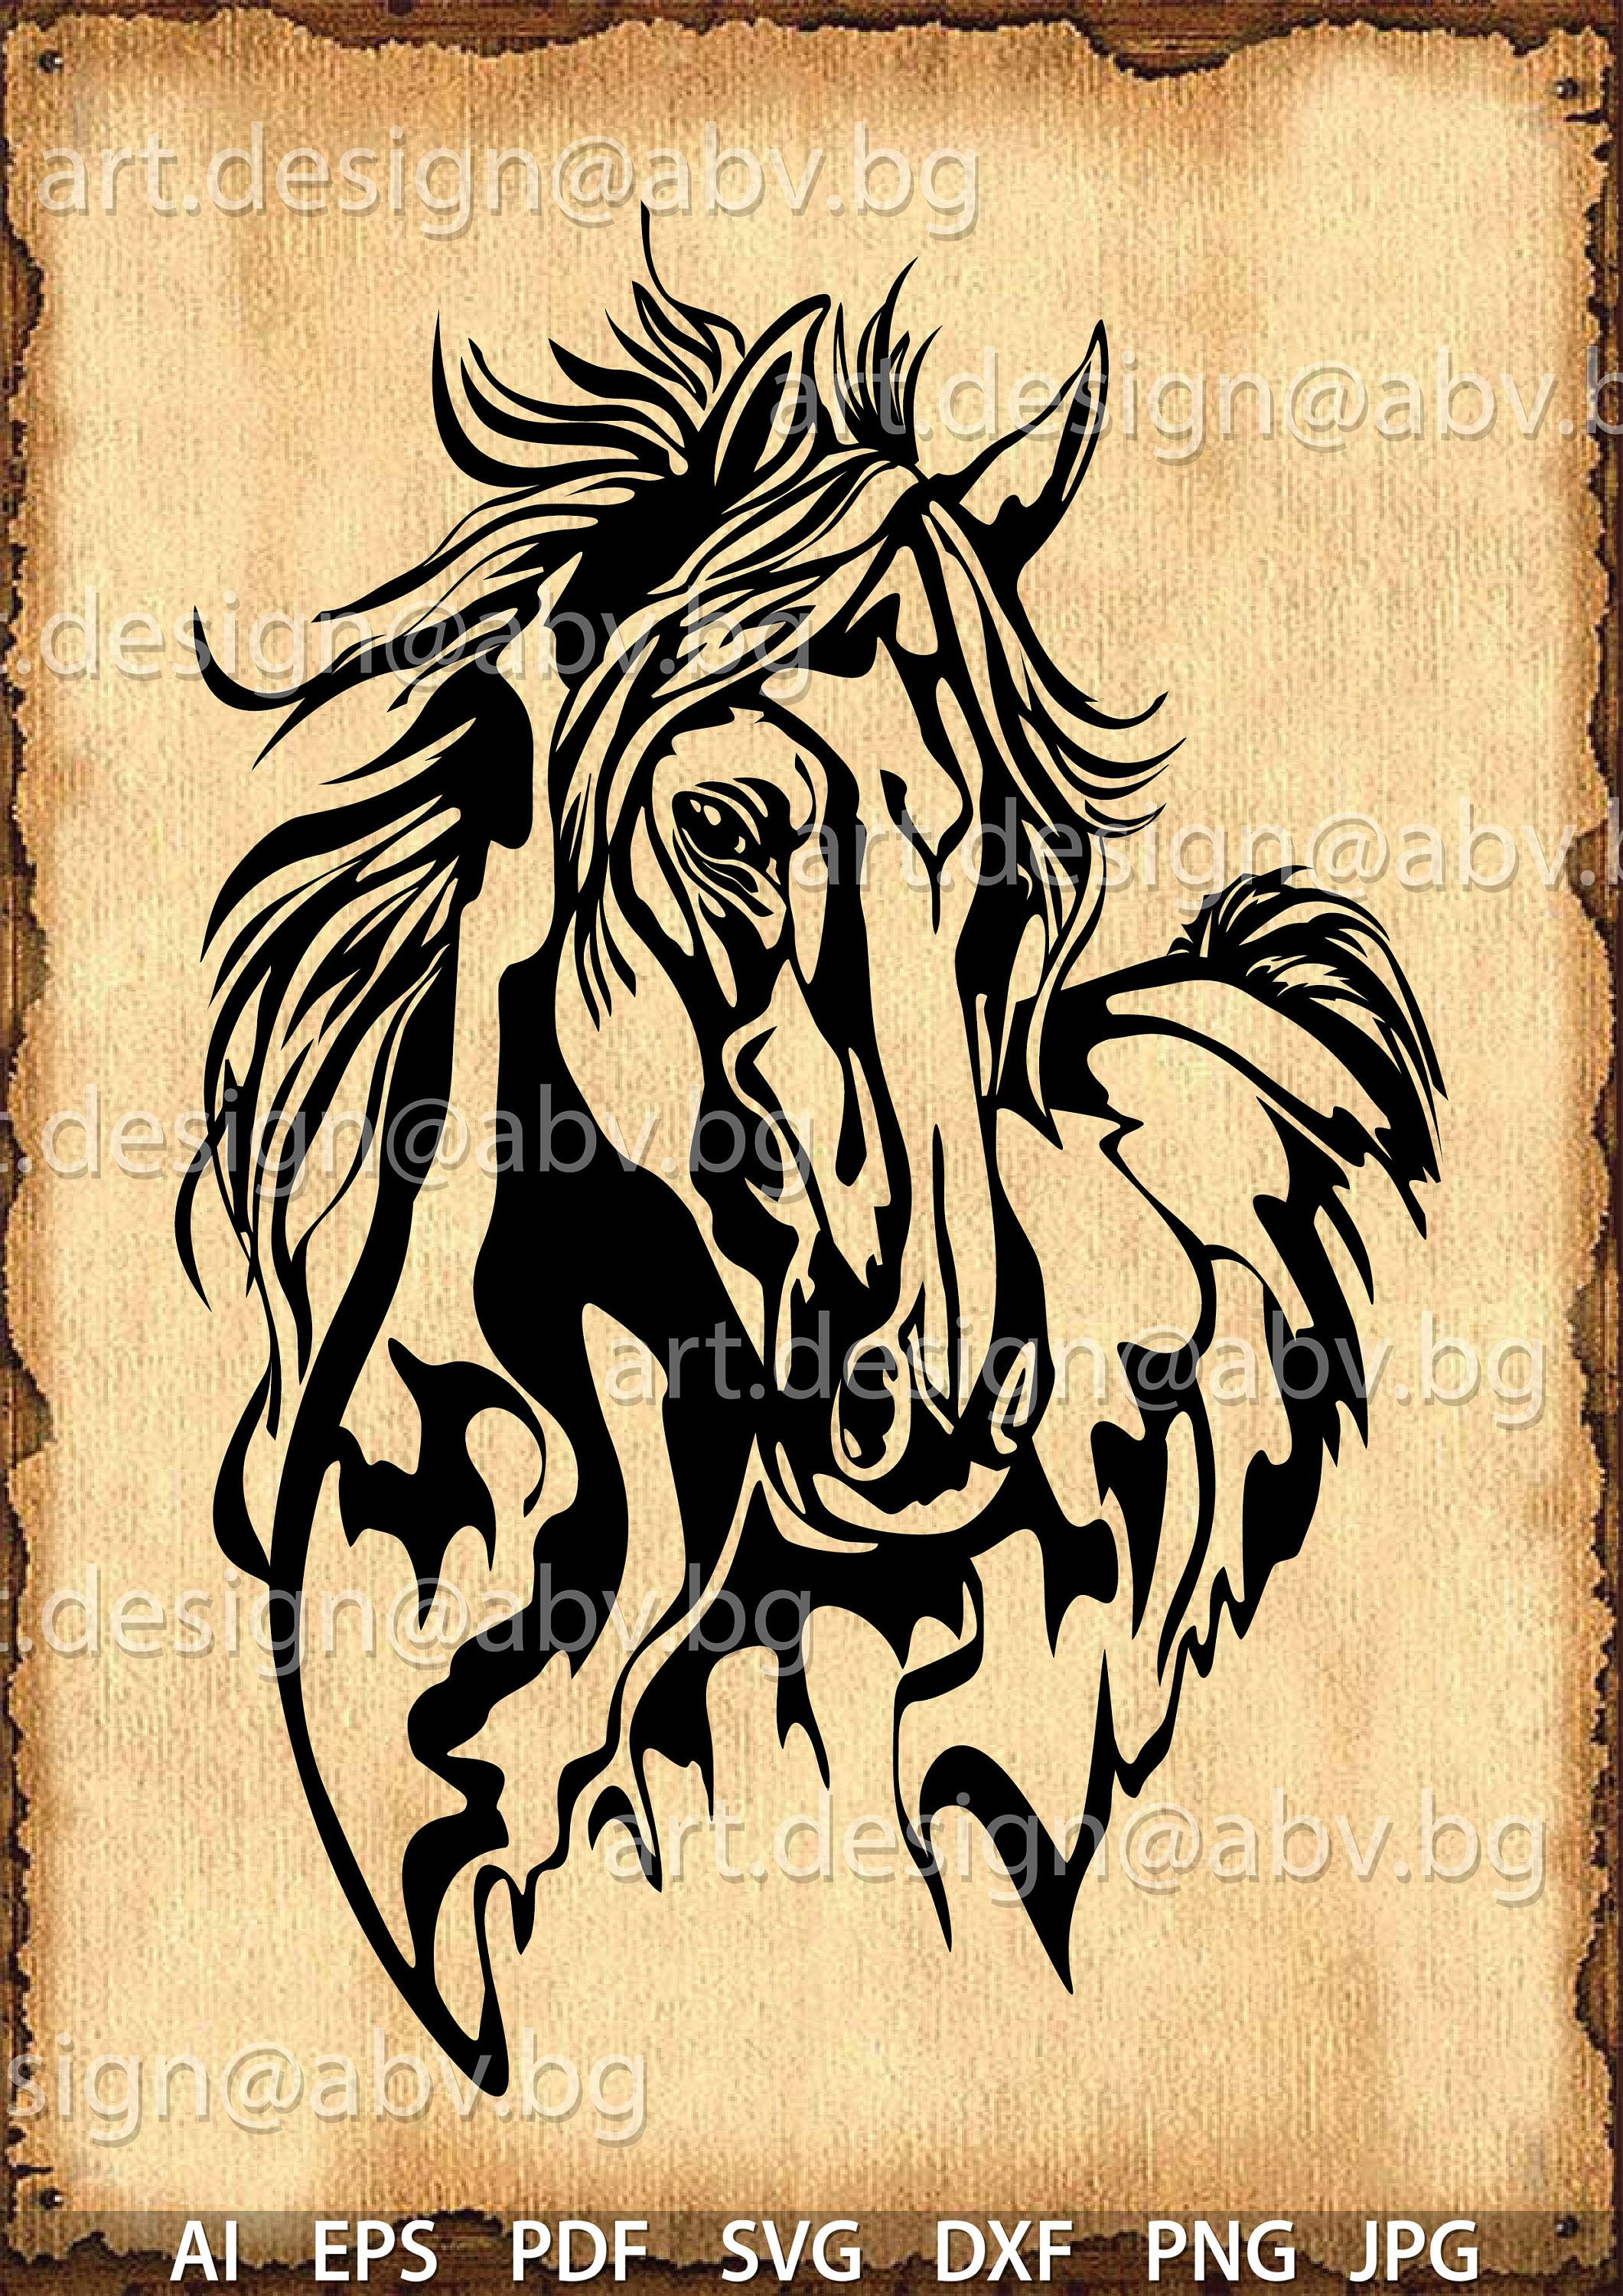 Vector Horse Svg Dxf Ai Eps Pdf Png Jpg Download Digital Image Graphical Image Discount Coupons In 2020 Moose Wall Art Horse Silhouette Horse Artwork